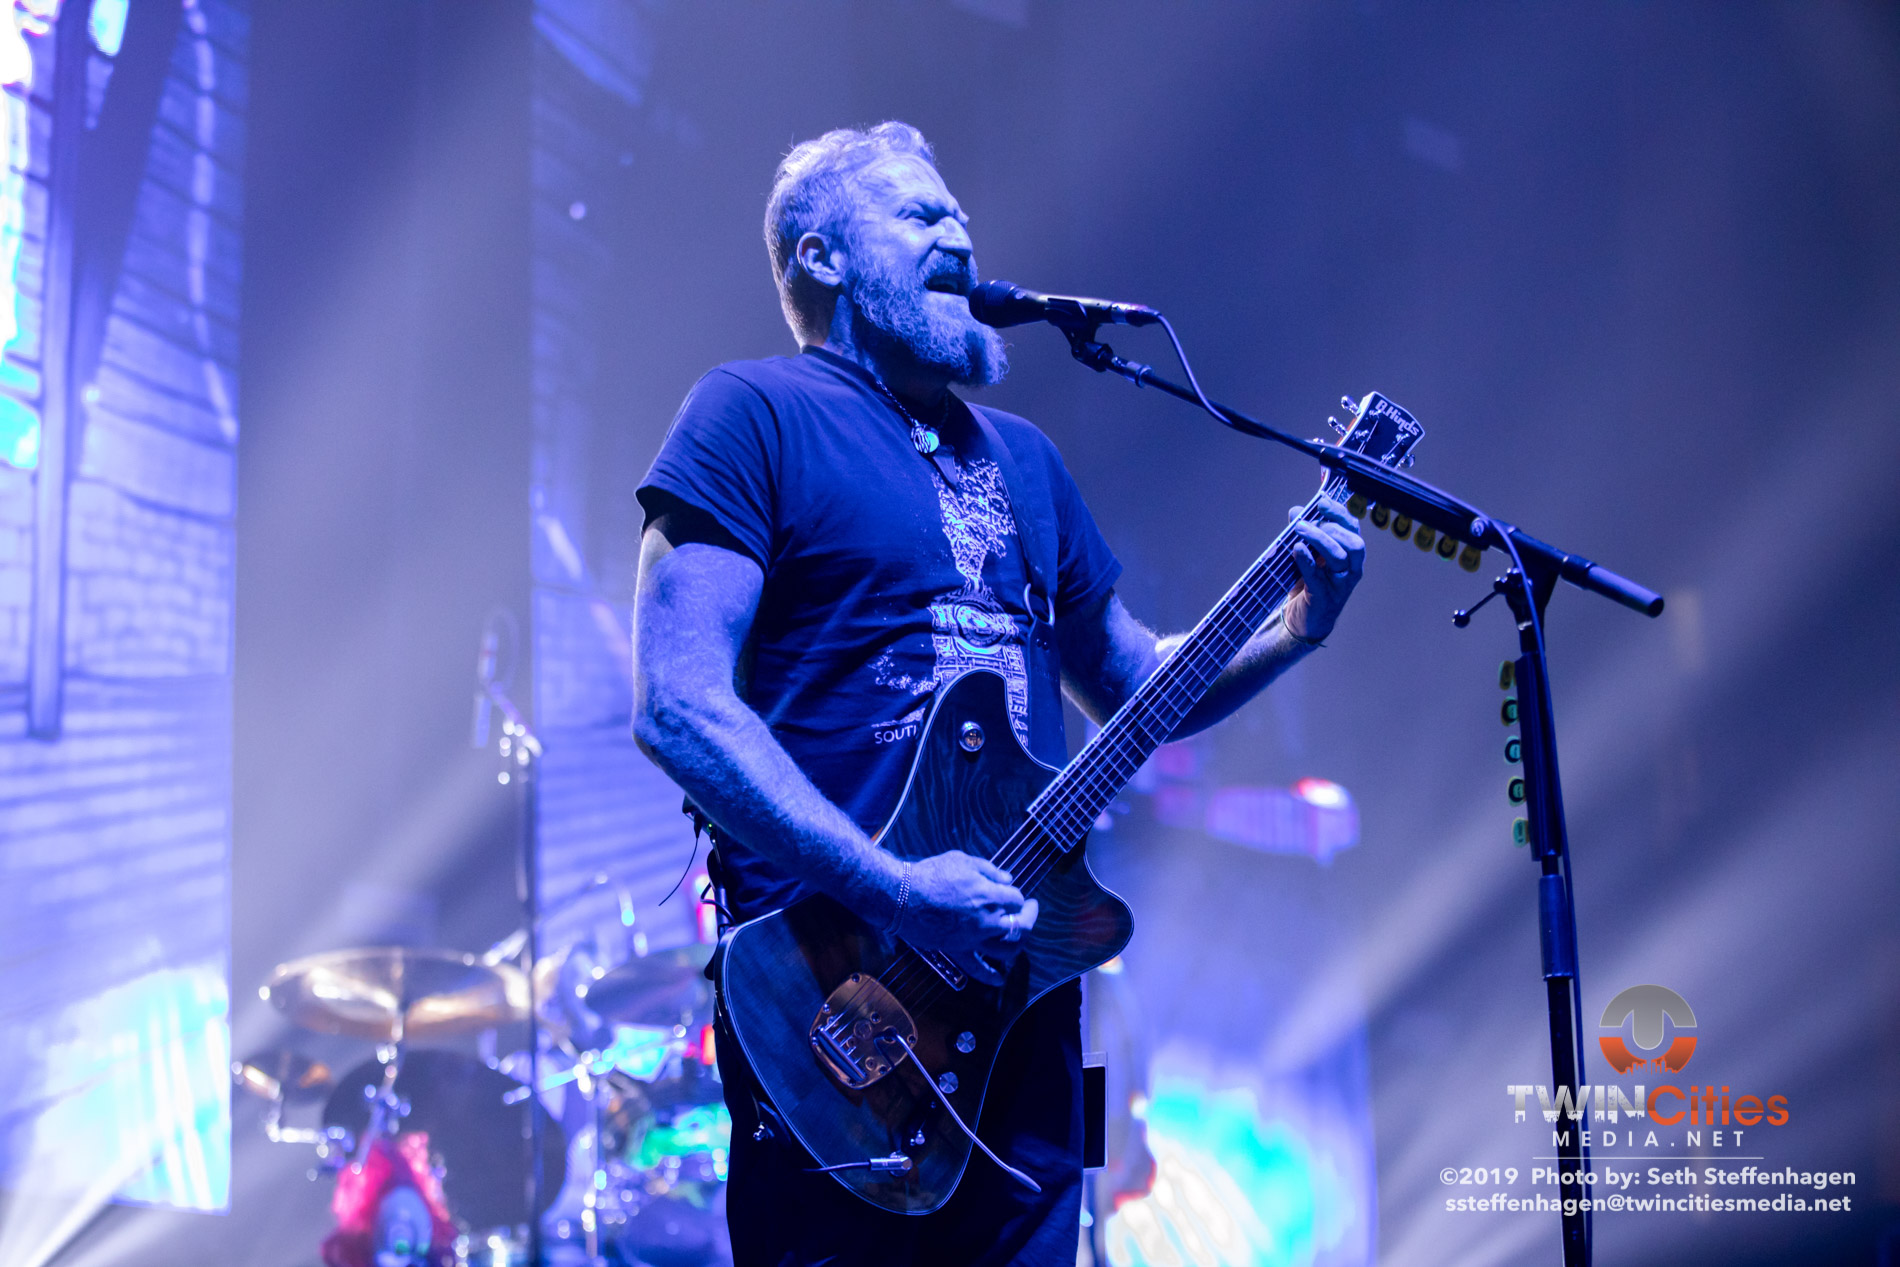 June 15, 2019 - Minneapolis, Minnesota, United States - Mastodon live in concert at The Armory along with Coheed & Cambria and Every Time I Die.(Photo by Seth Steffenhagen/Steffenhagen Photography)